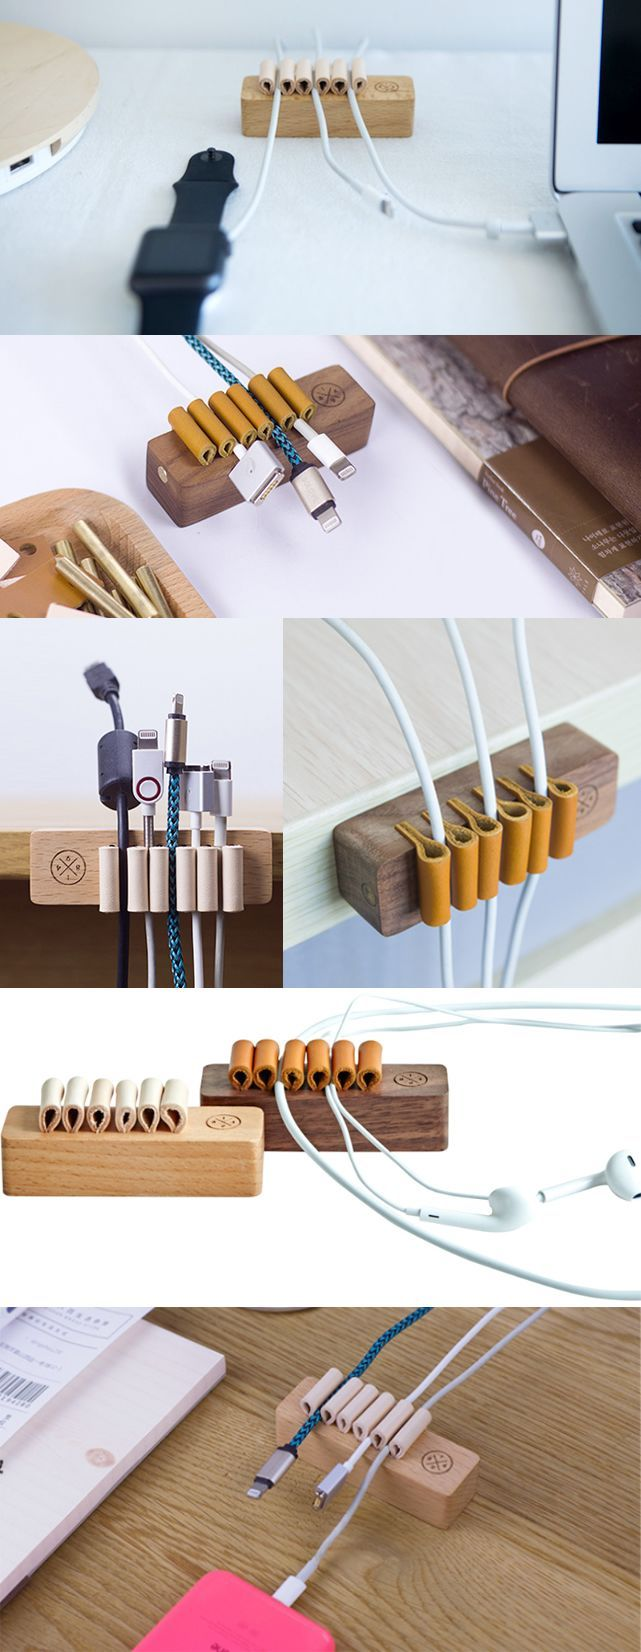 Wooden Wood Desk Cord Cable Clip Holder Cord Organizer Manager Management System Power Cords And Charging Cable Organizer Diy Cable Organizer Cord Organization